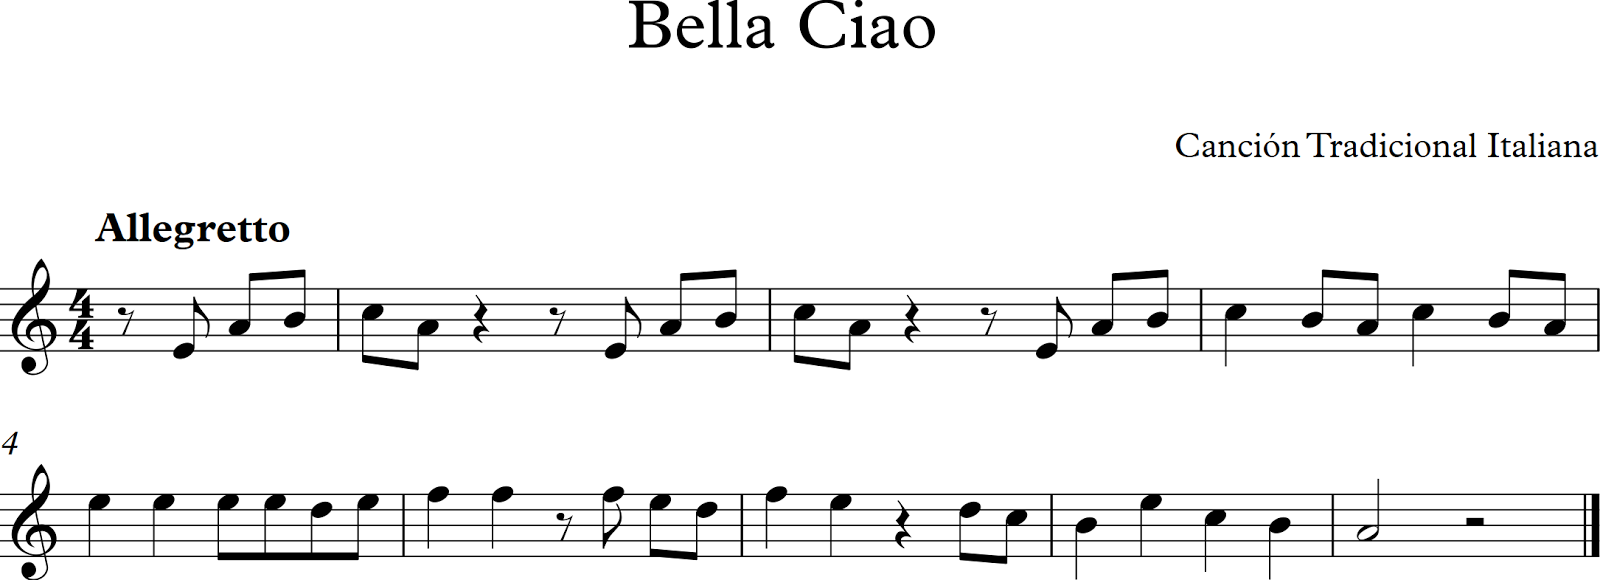 Bella Ciao Piano Sheet Music Pdf Music Sheet Collection